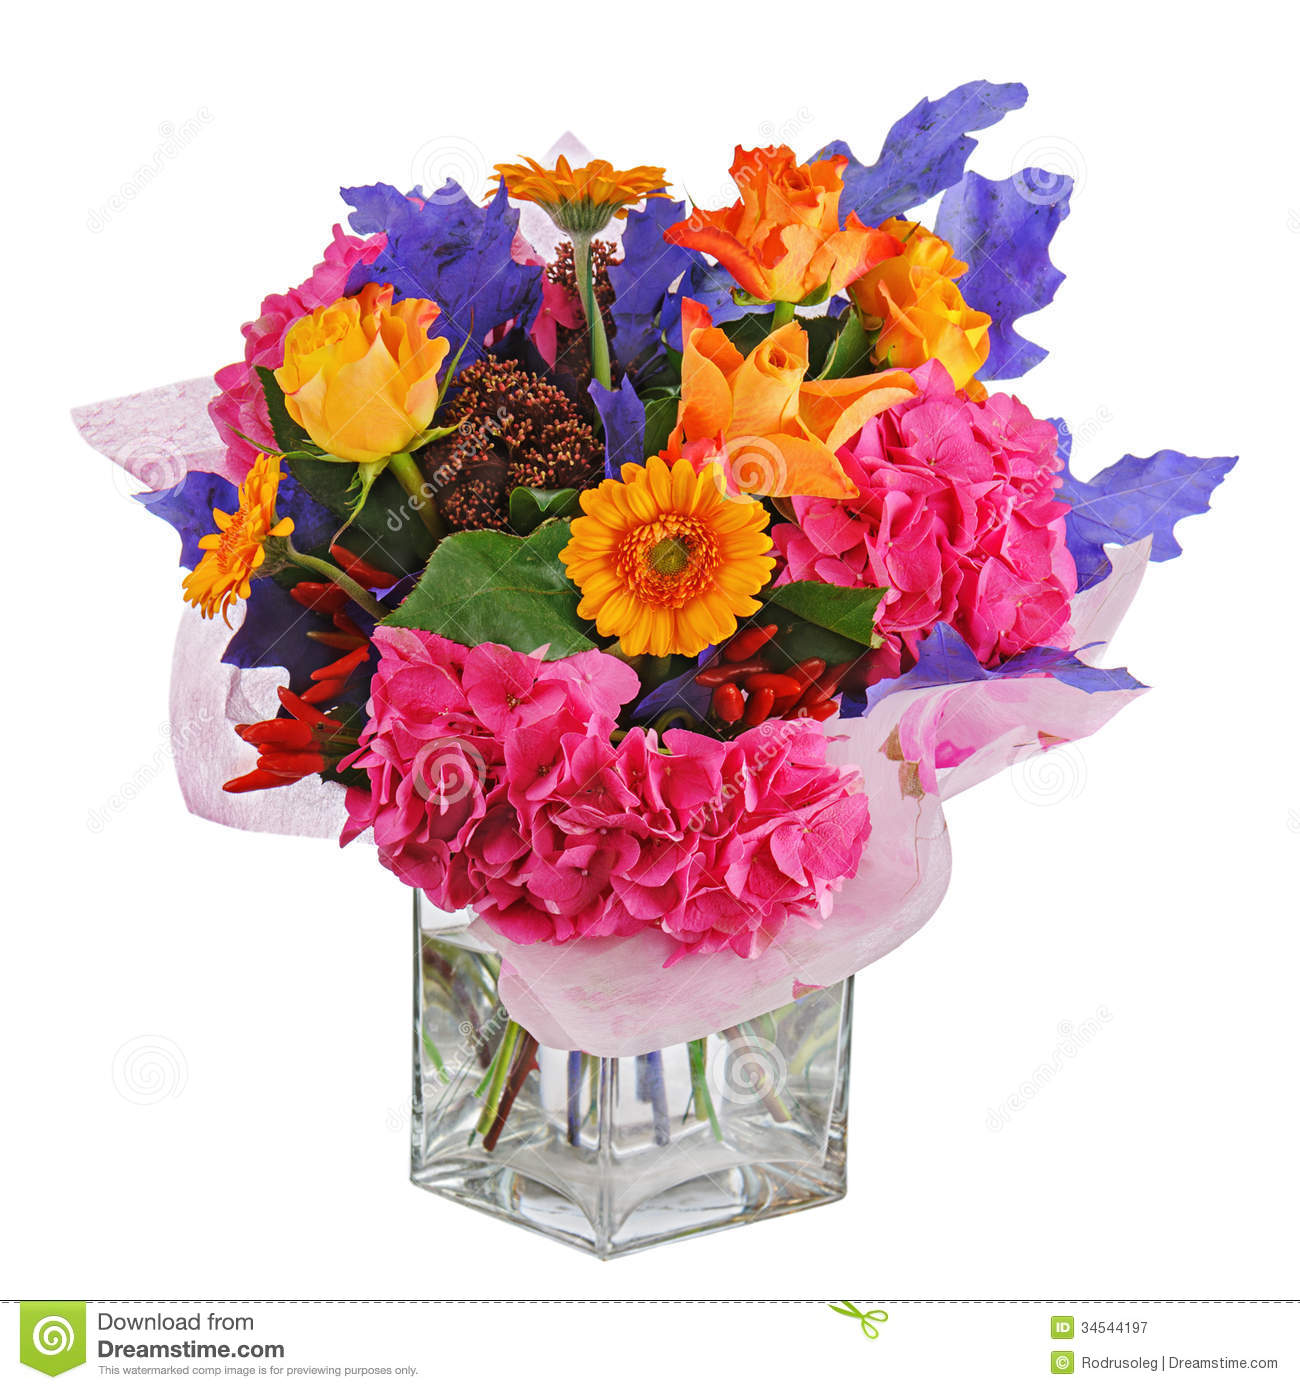 Colorful Flower Bouquet In Vase Isolated On White Background. Stock ...